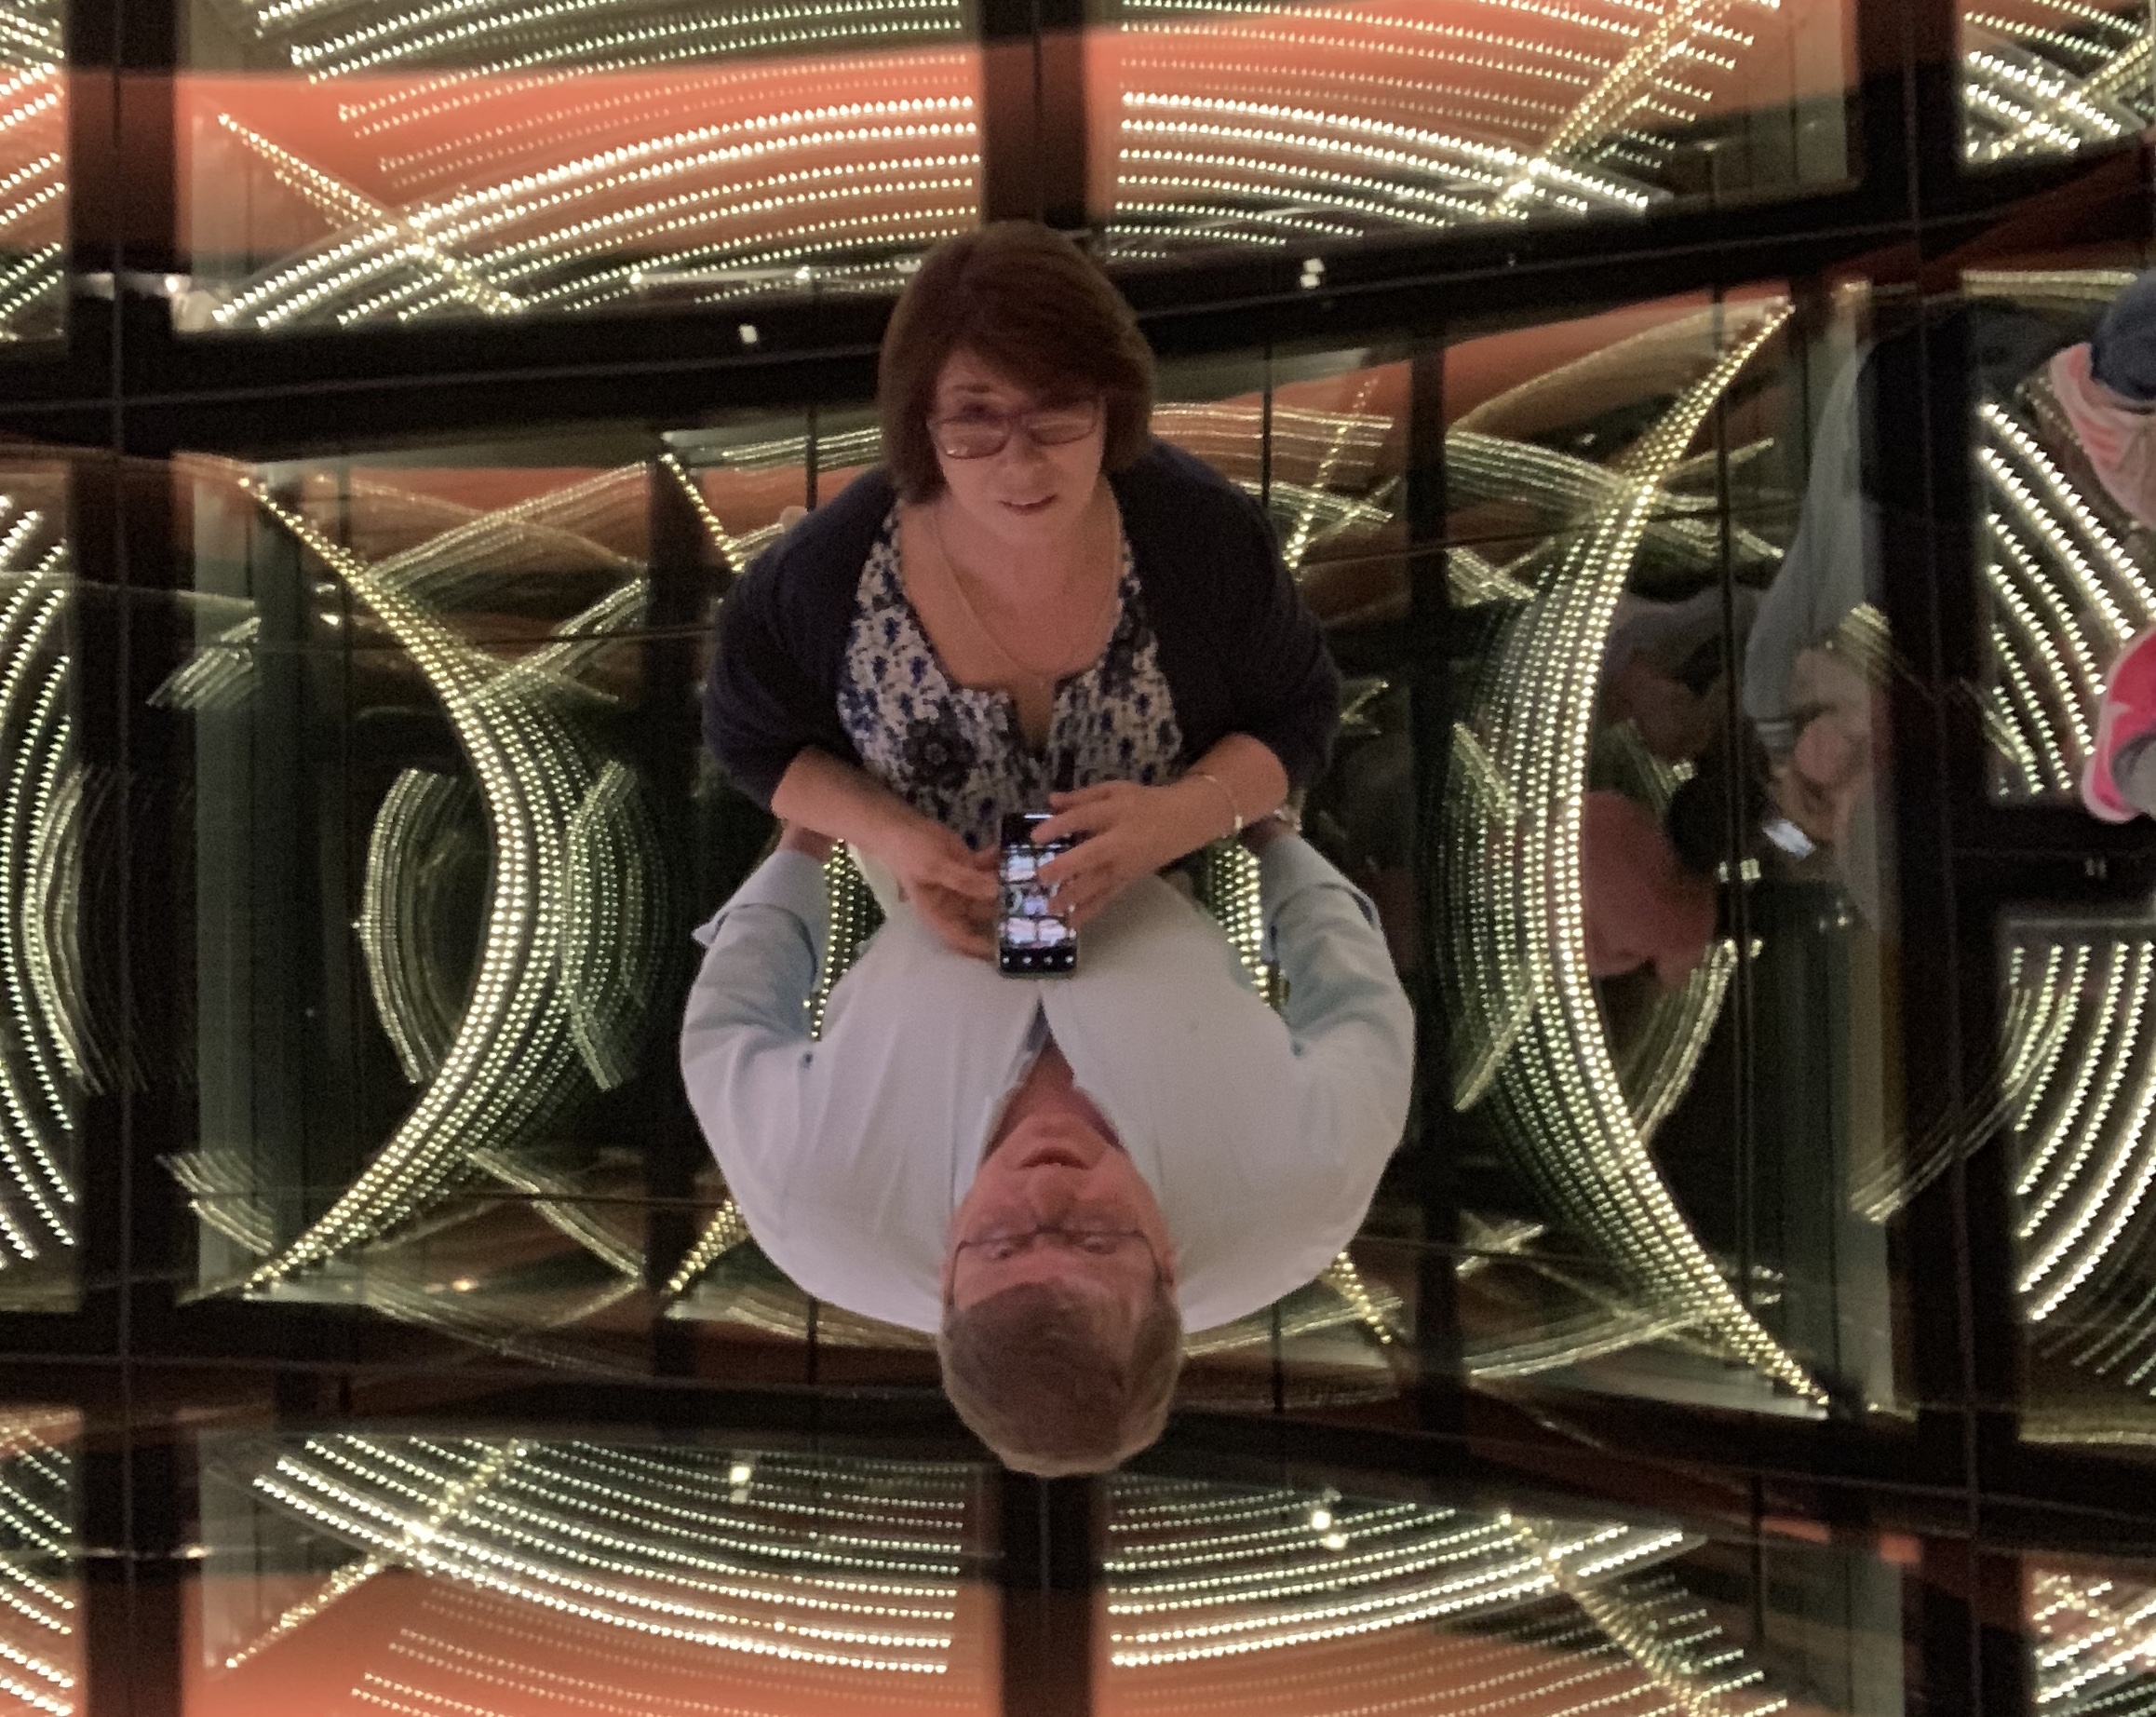 The stunning mirrored floor and ceiling in the entrance to the casino makes for a cool shot!